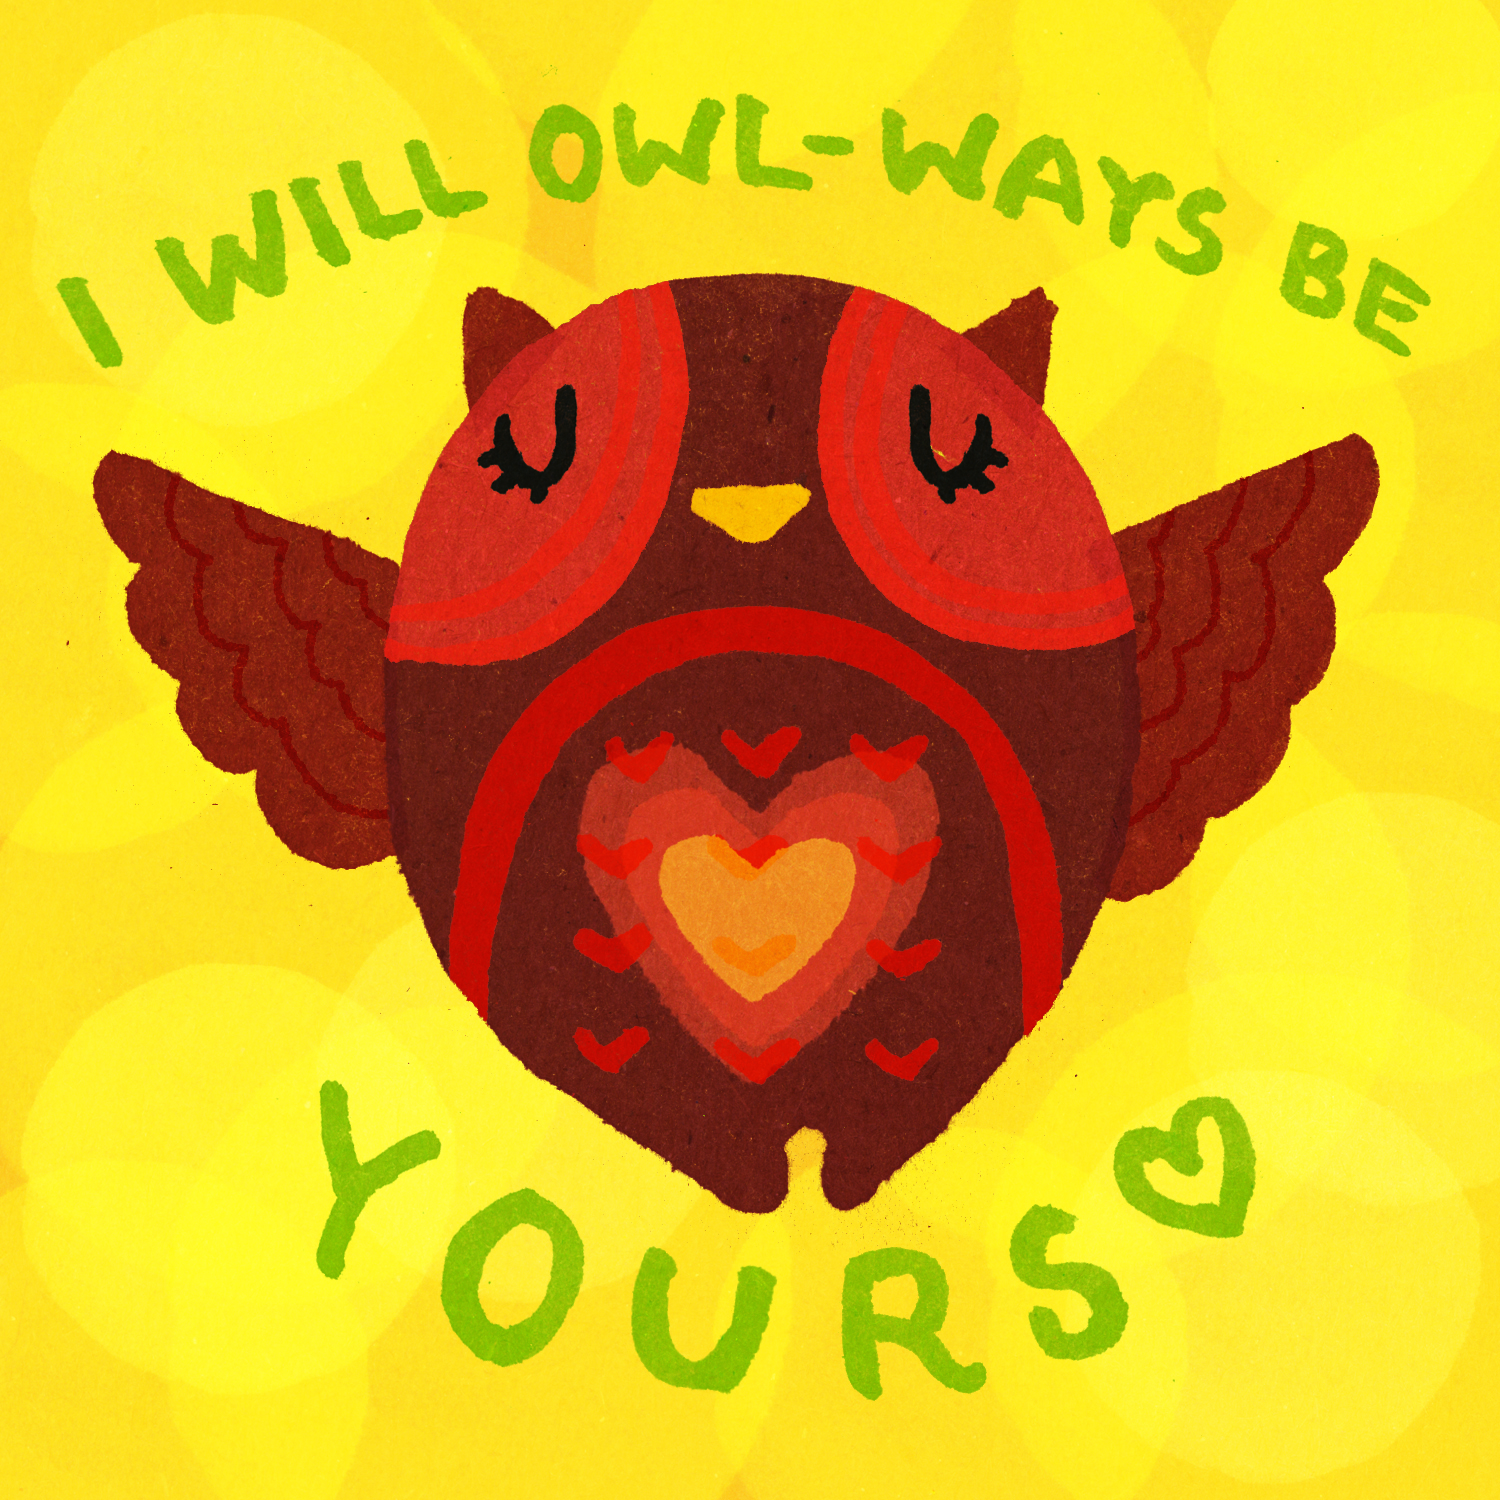 I will owl-ways be yours